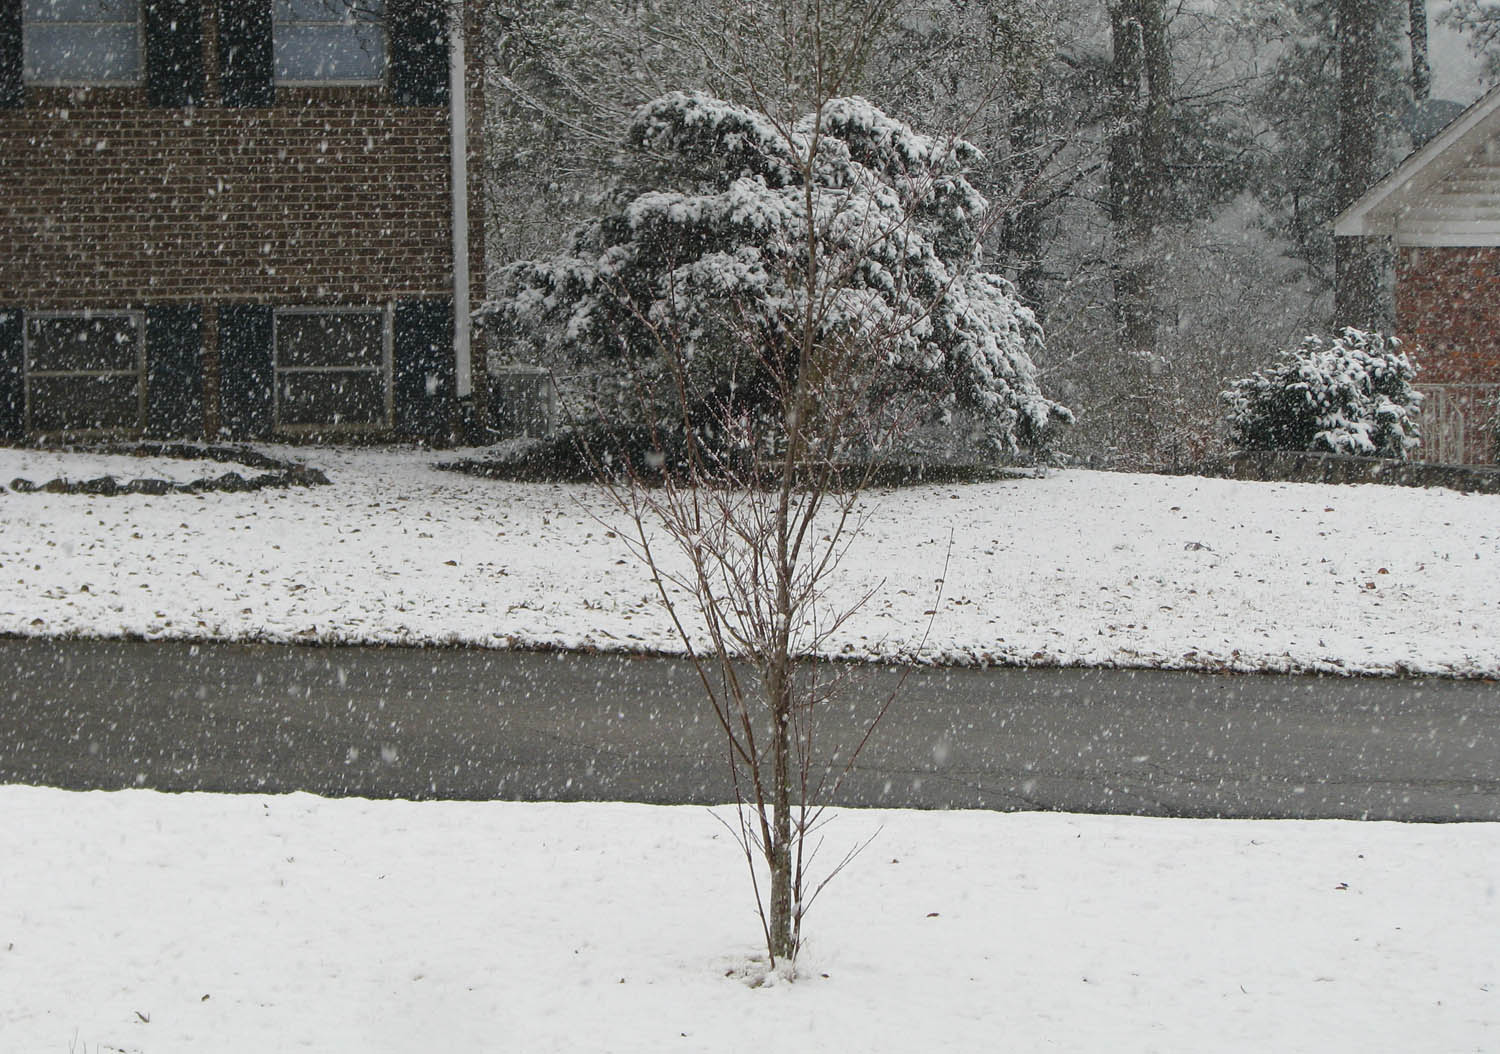 Snow falling on Analise's dogwood tree in the front yard